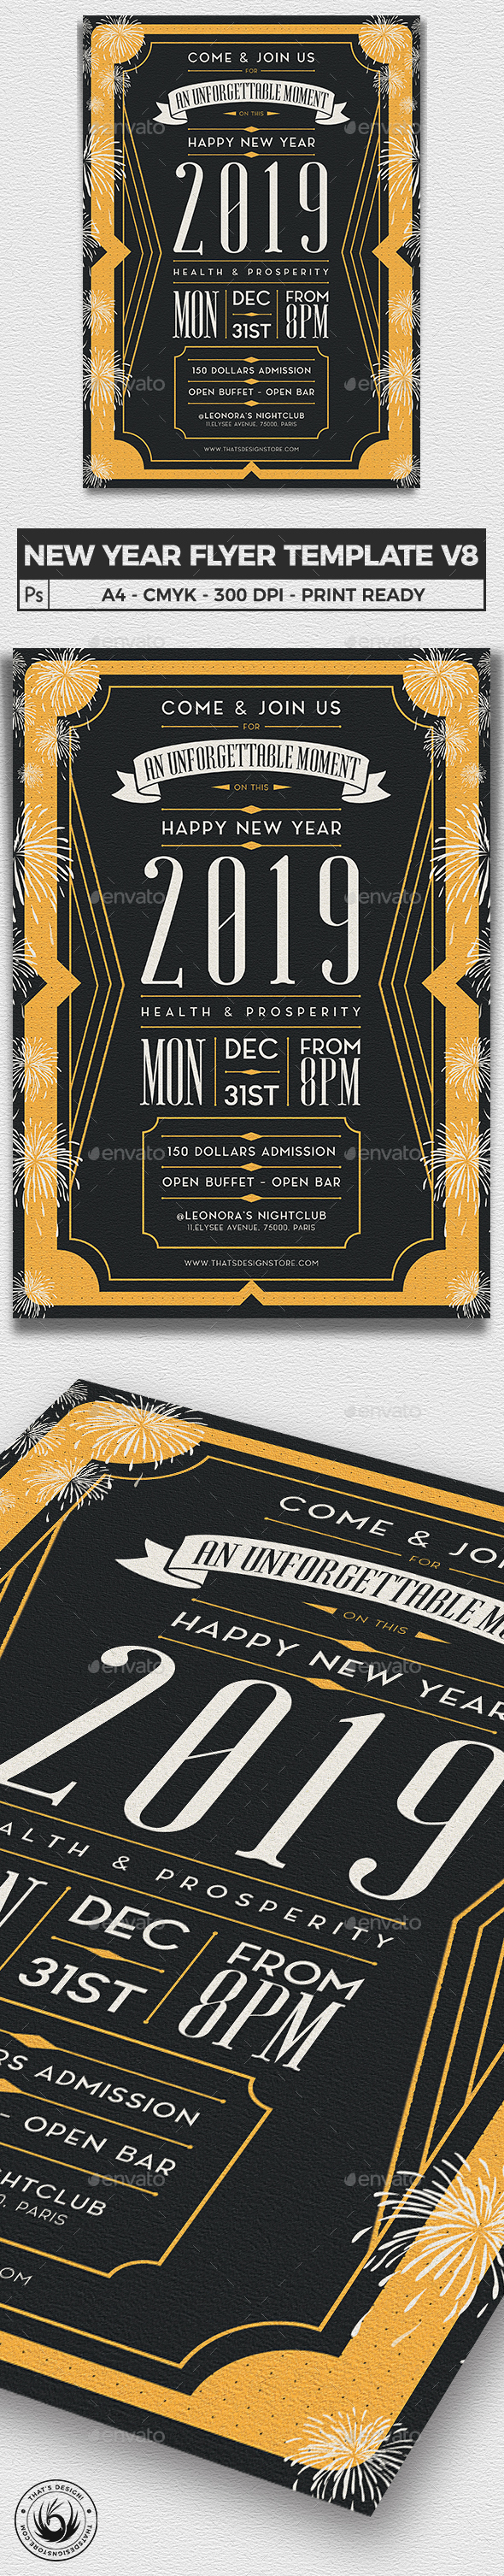 New Year Flyer Template V8 - Clubs & Parties Events